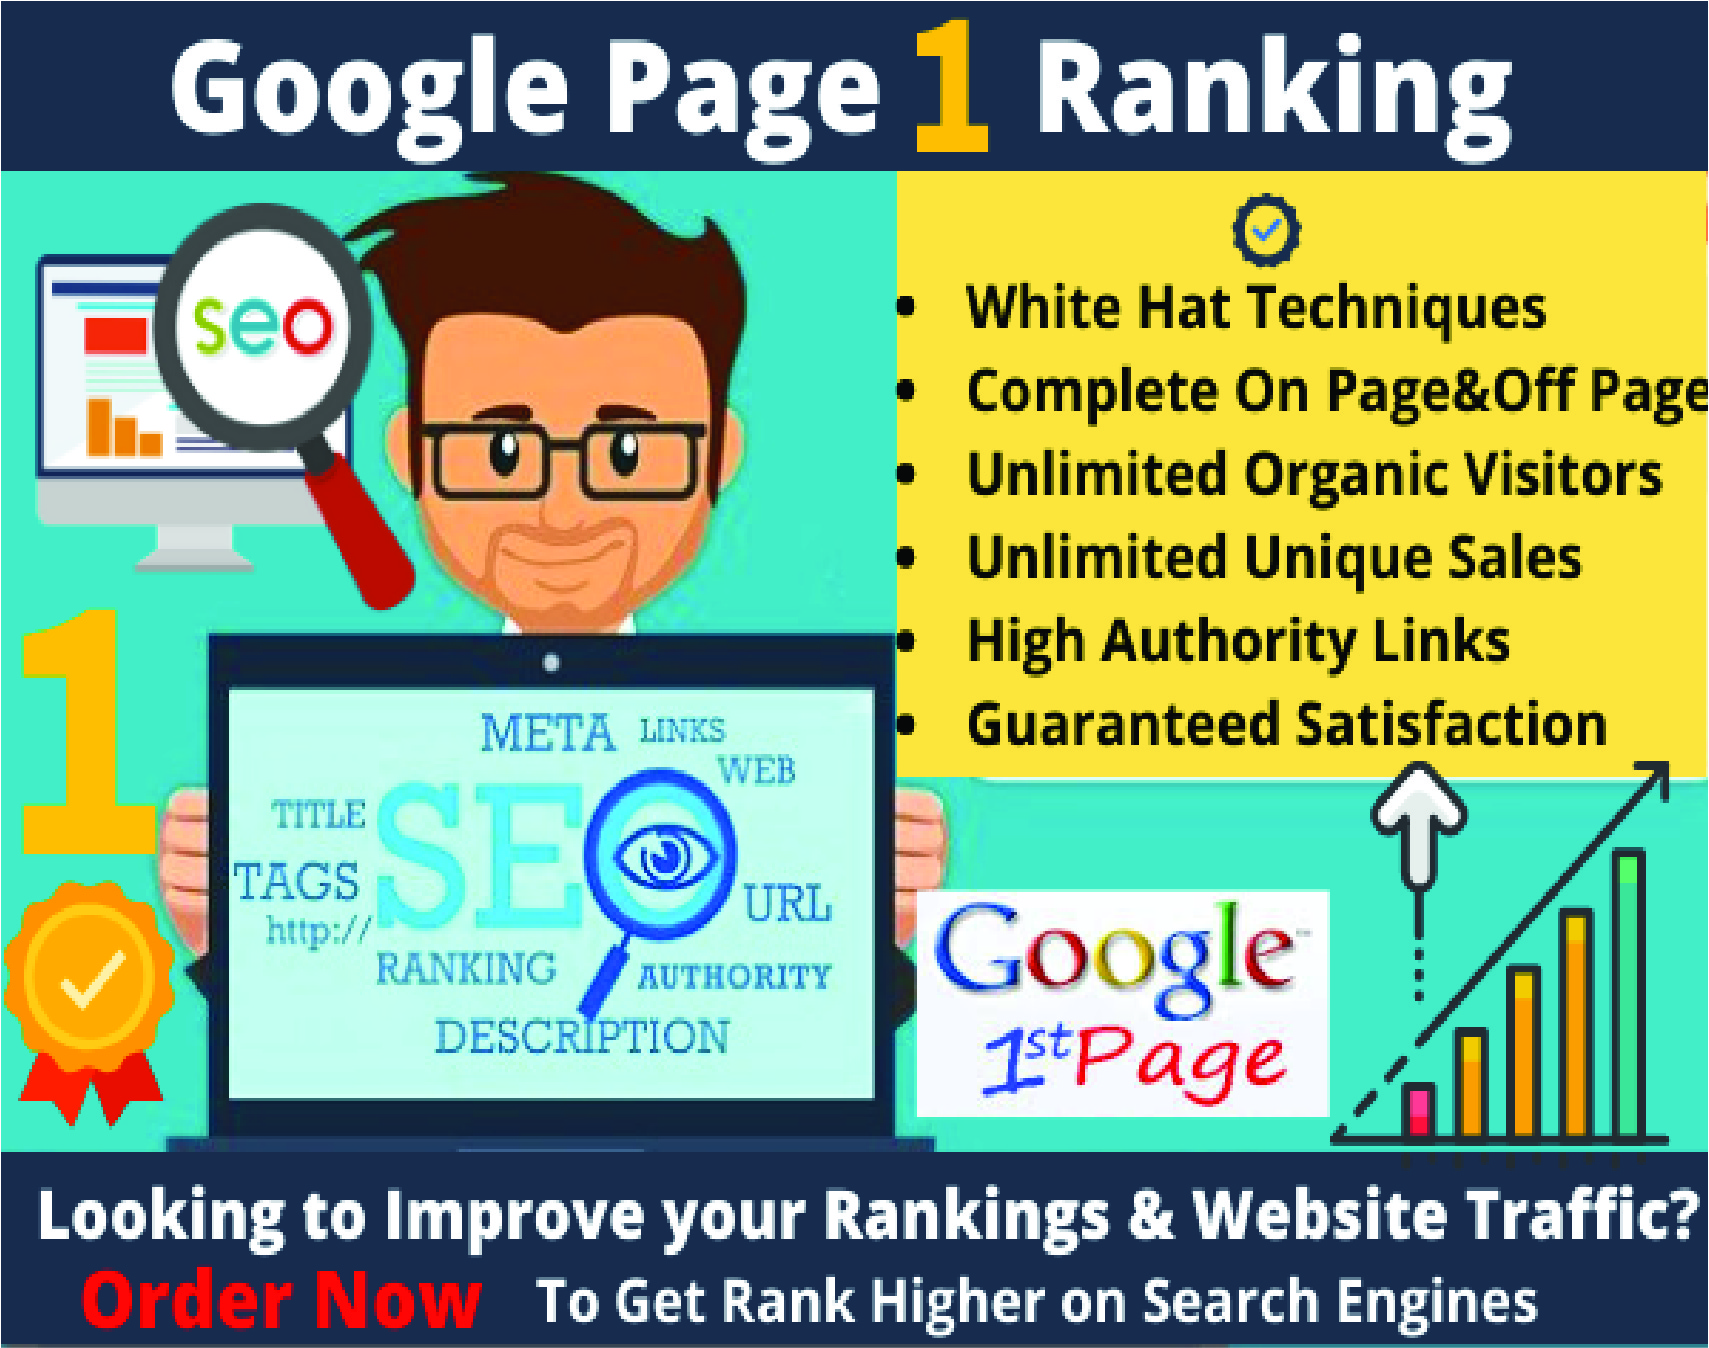 Rank Your Website Google First Page With White Hat SEO Or Get Money Back